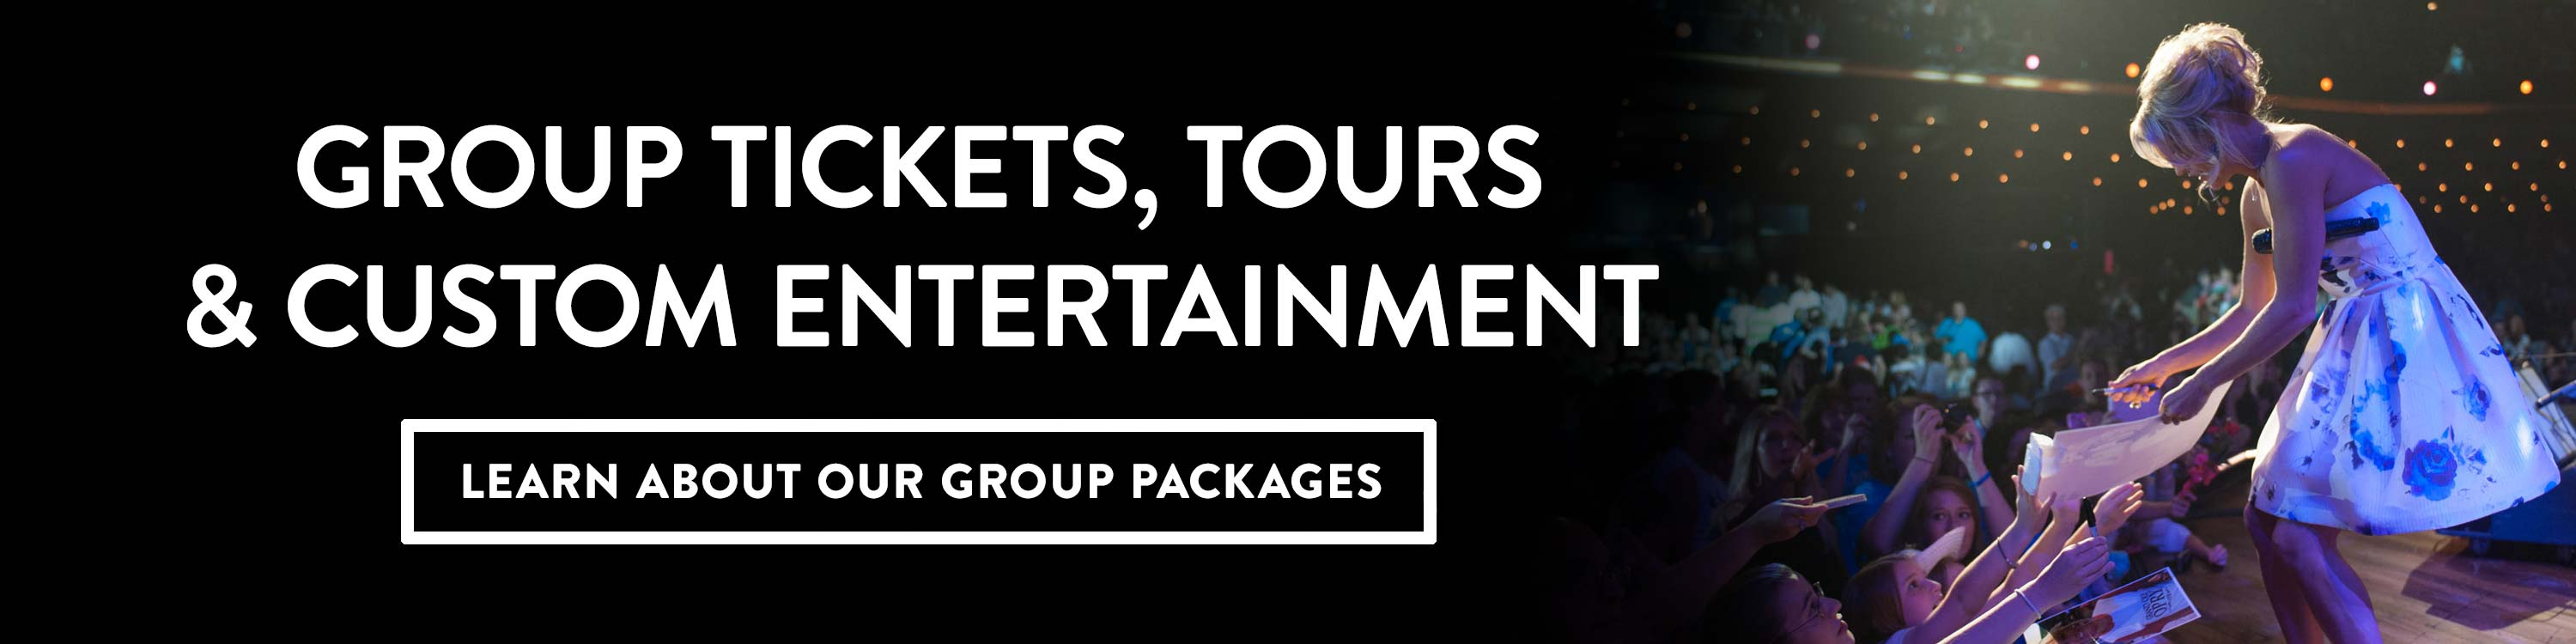 Group Tickets, Tours, and Custom Entertainment - Learn About Our Group Packages